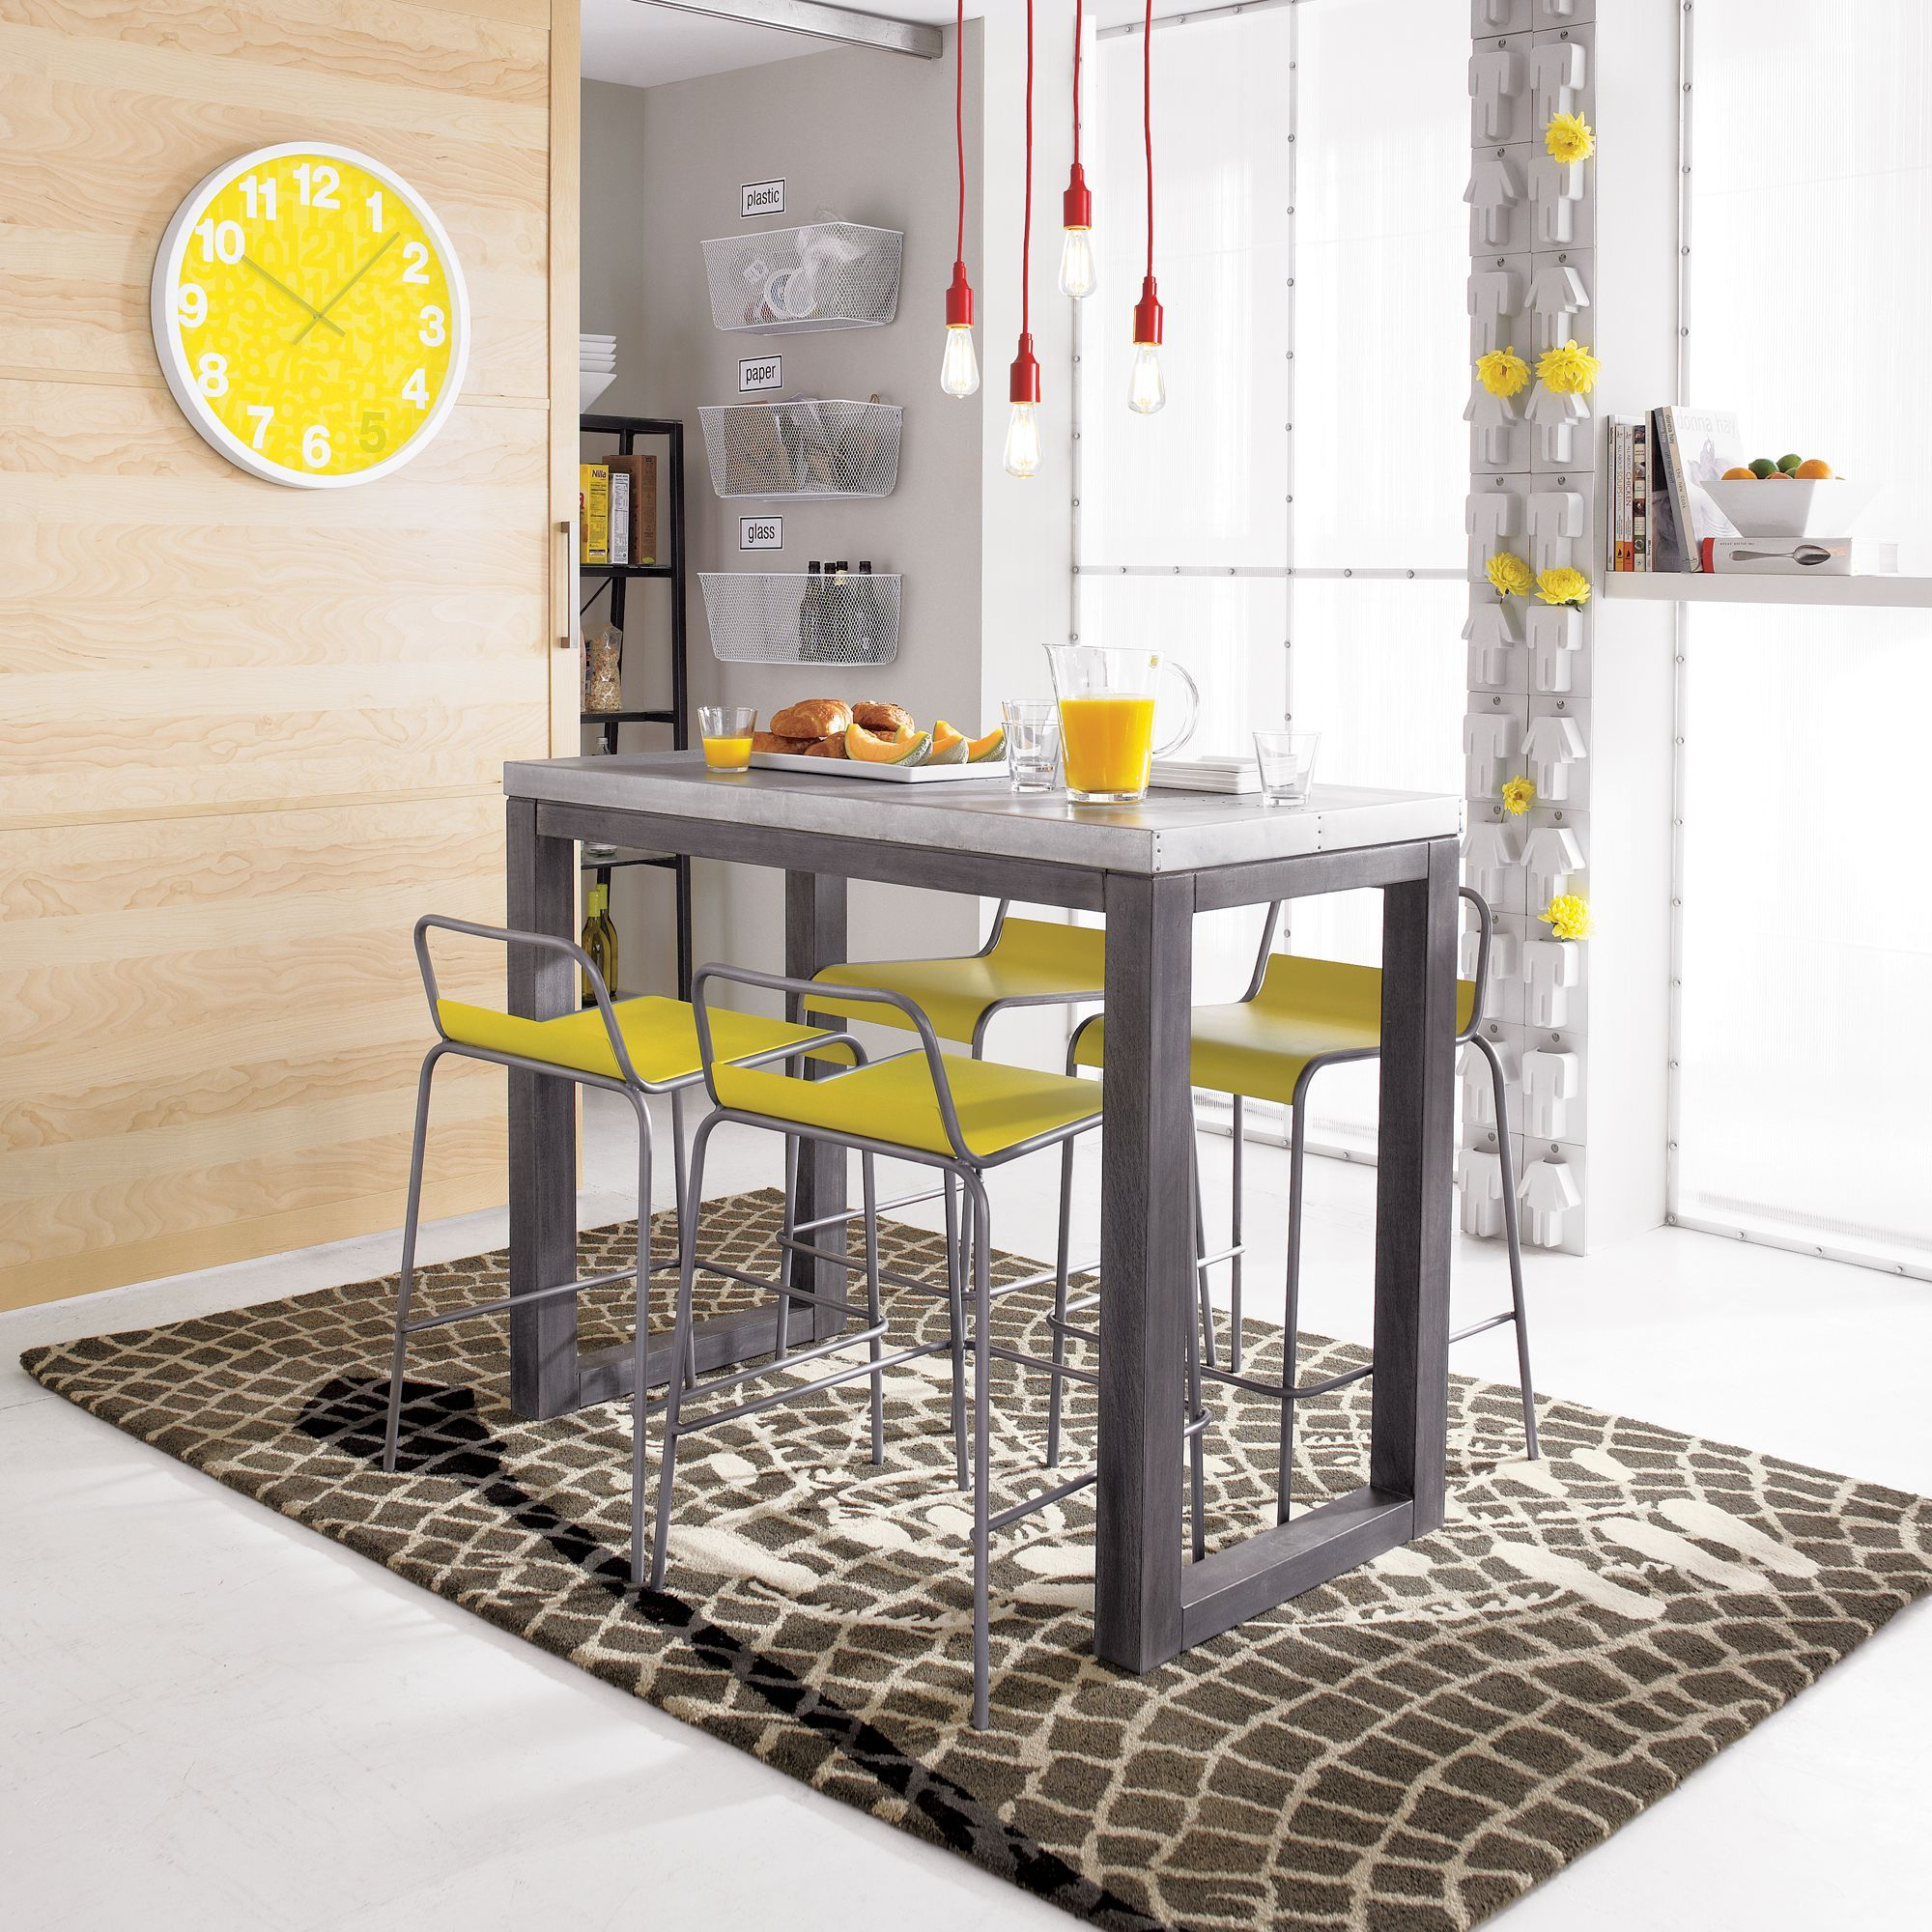 Stern 37 High Counter Table Counter Table Modern Dining Table Pub Table Sets